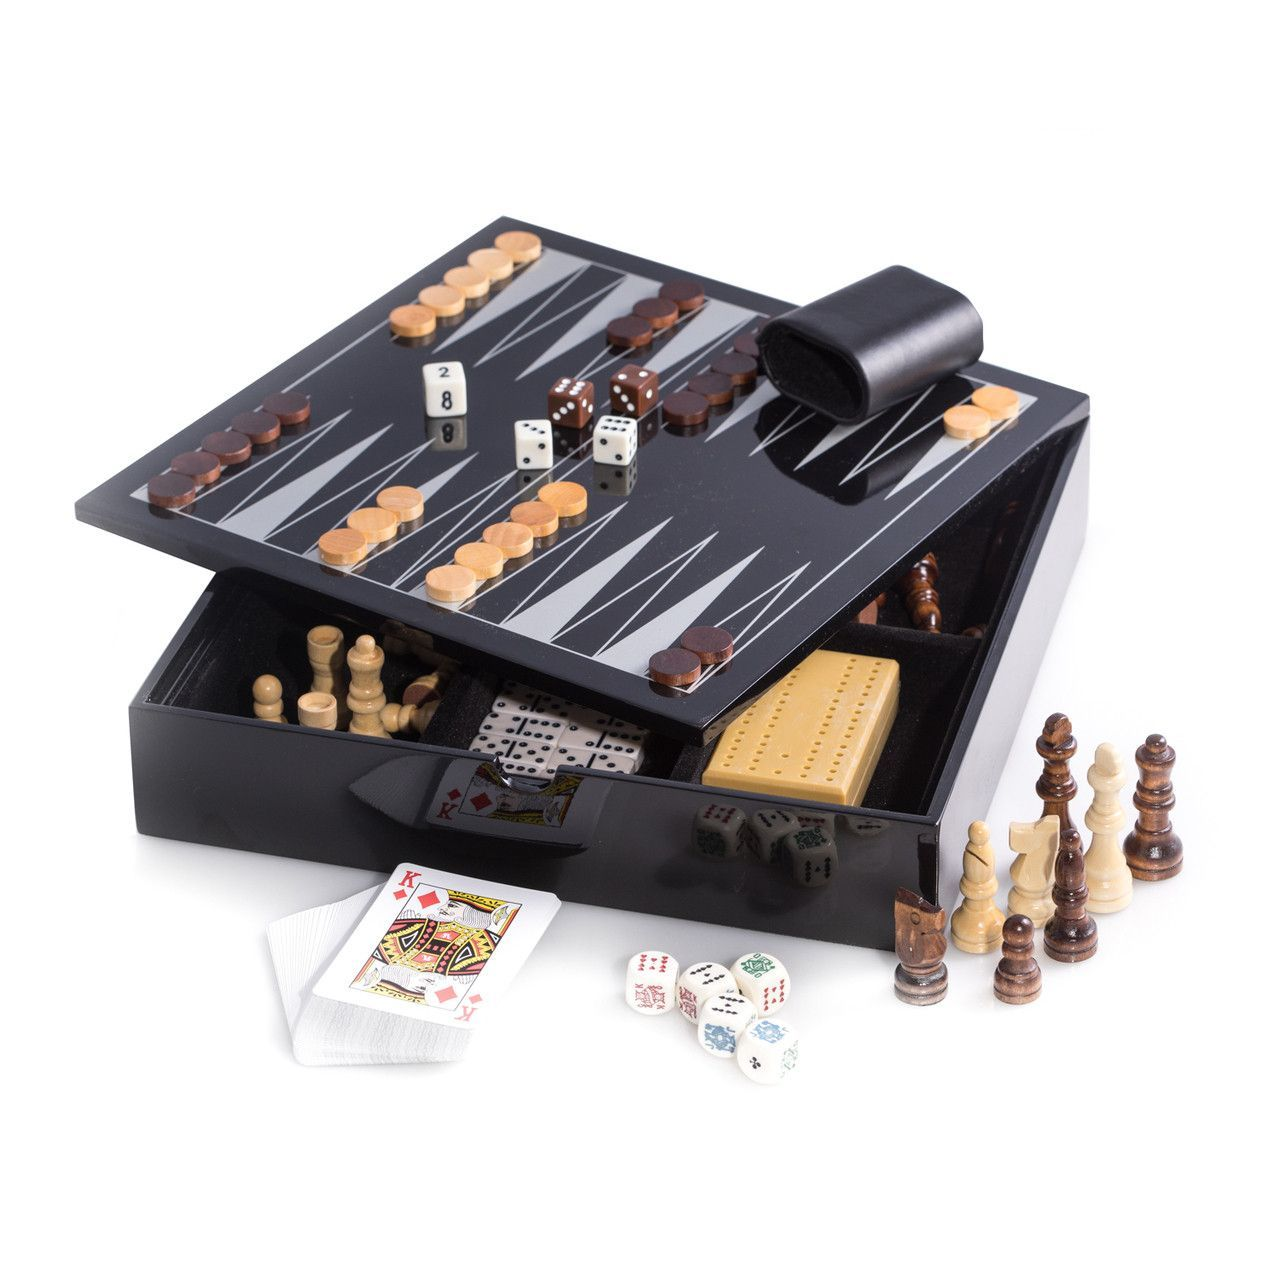 Black Lacquered Wood 51 Game Set Includes Chess and